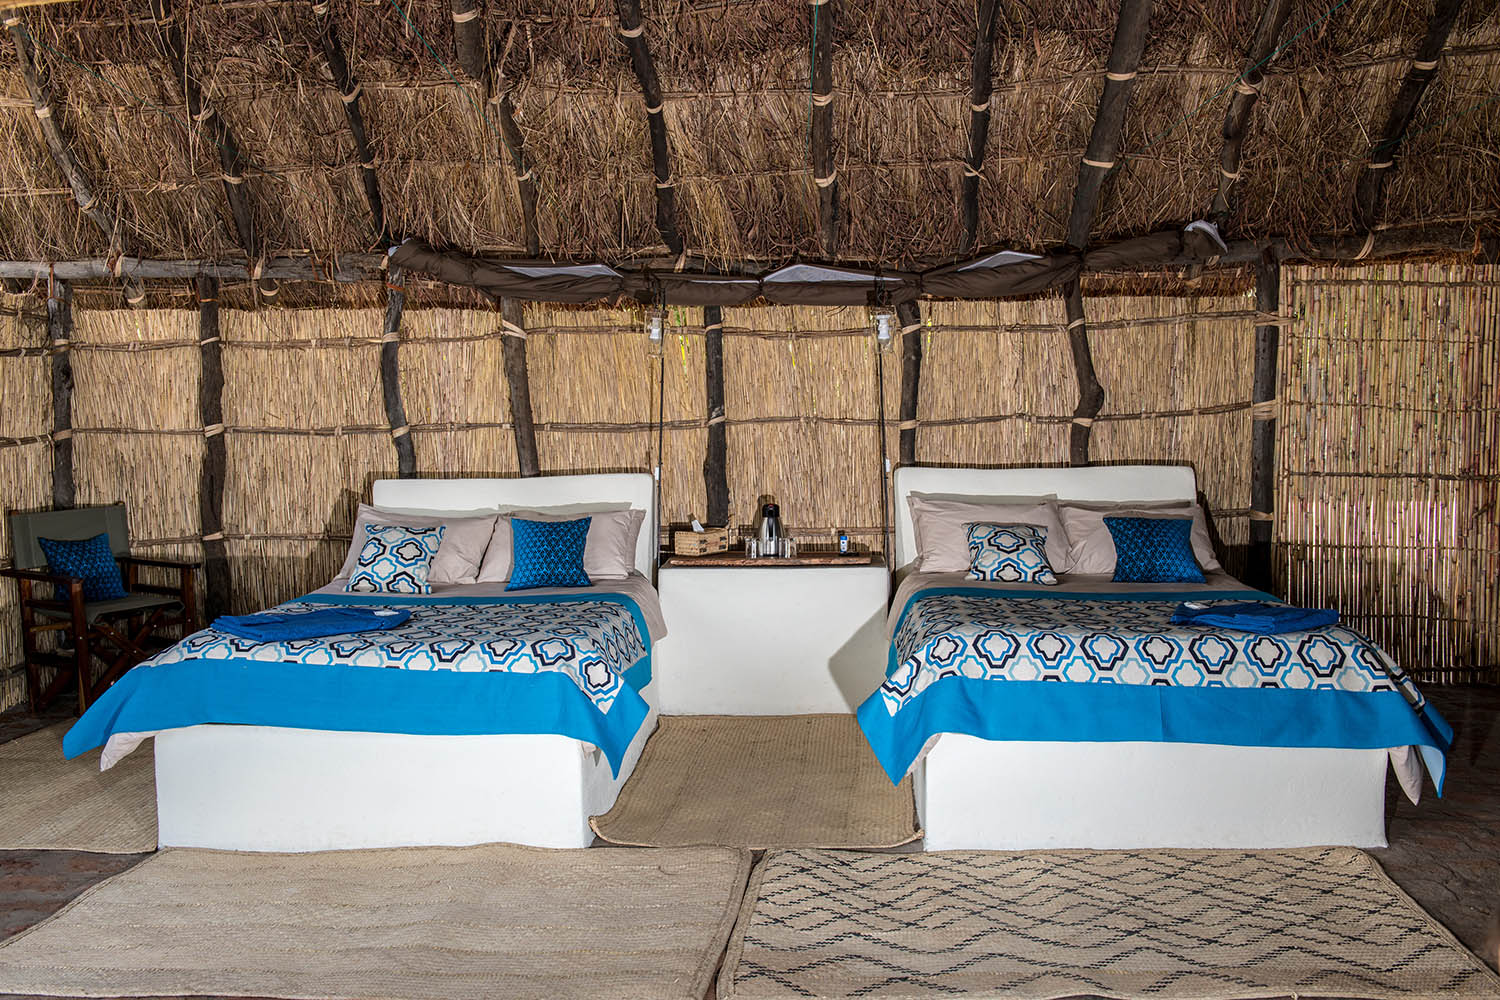 takwela-camp-north-luangwa-national-park-lodges-zambia-in-style-intimate-stay-twin-chalet-interior